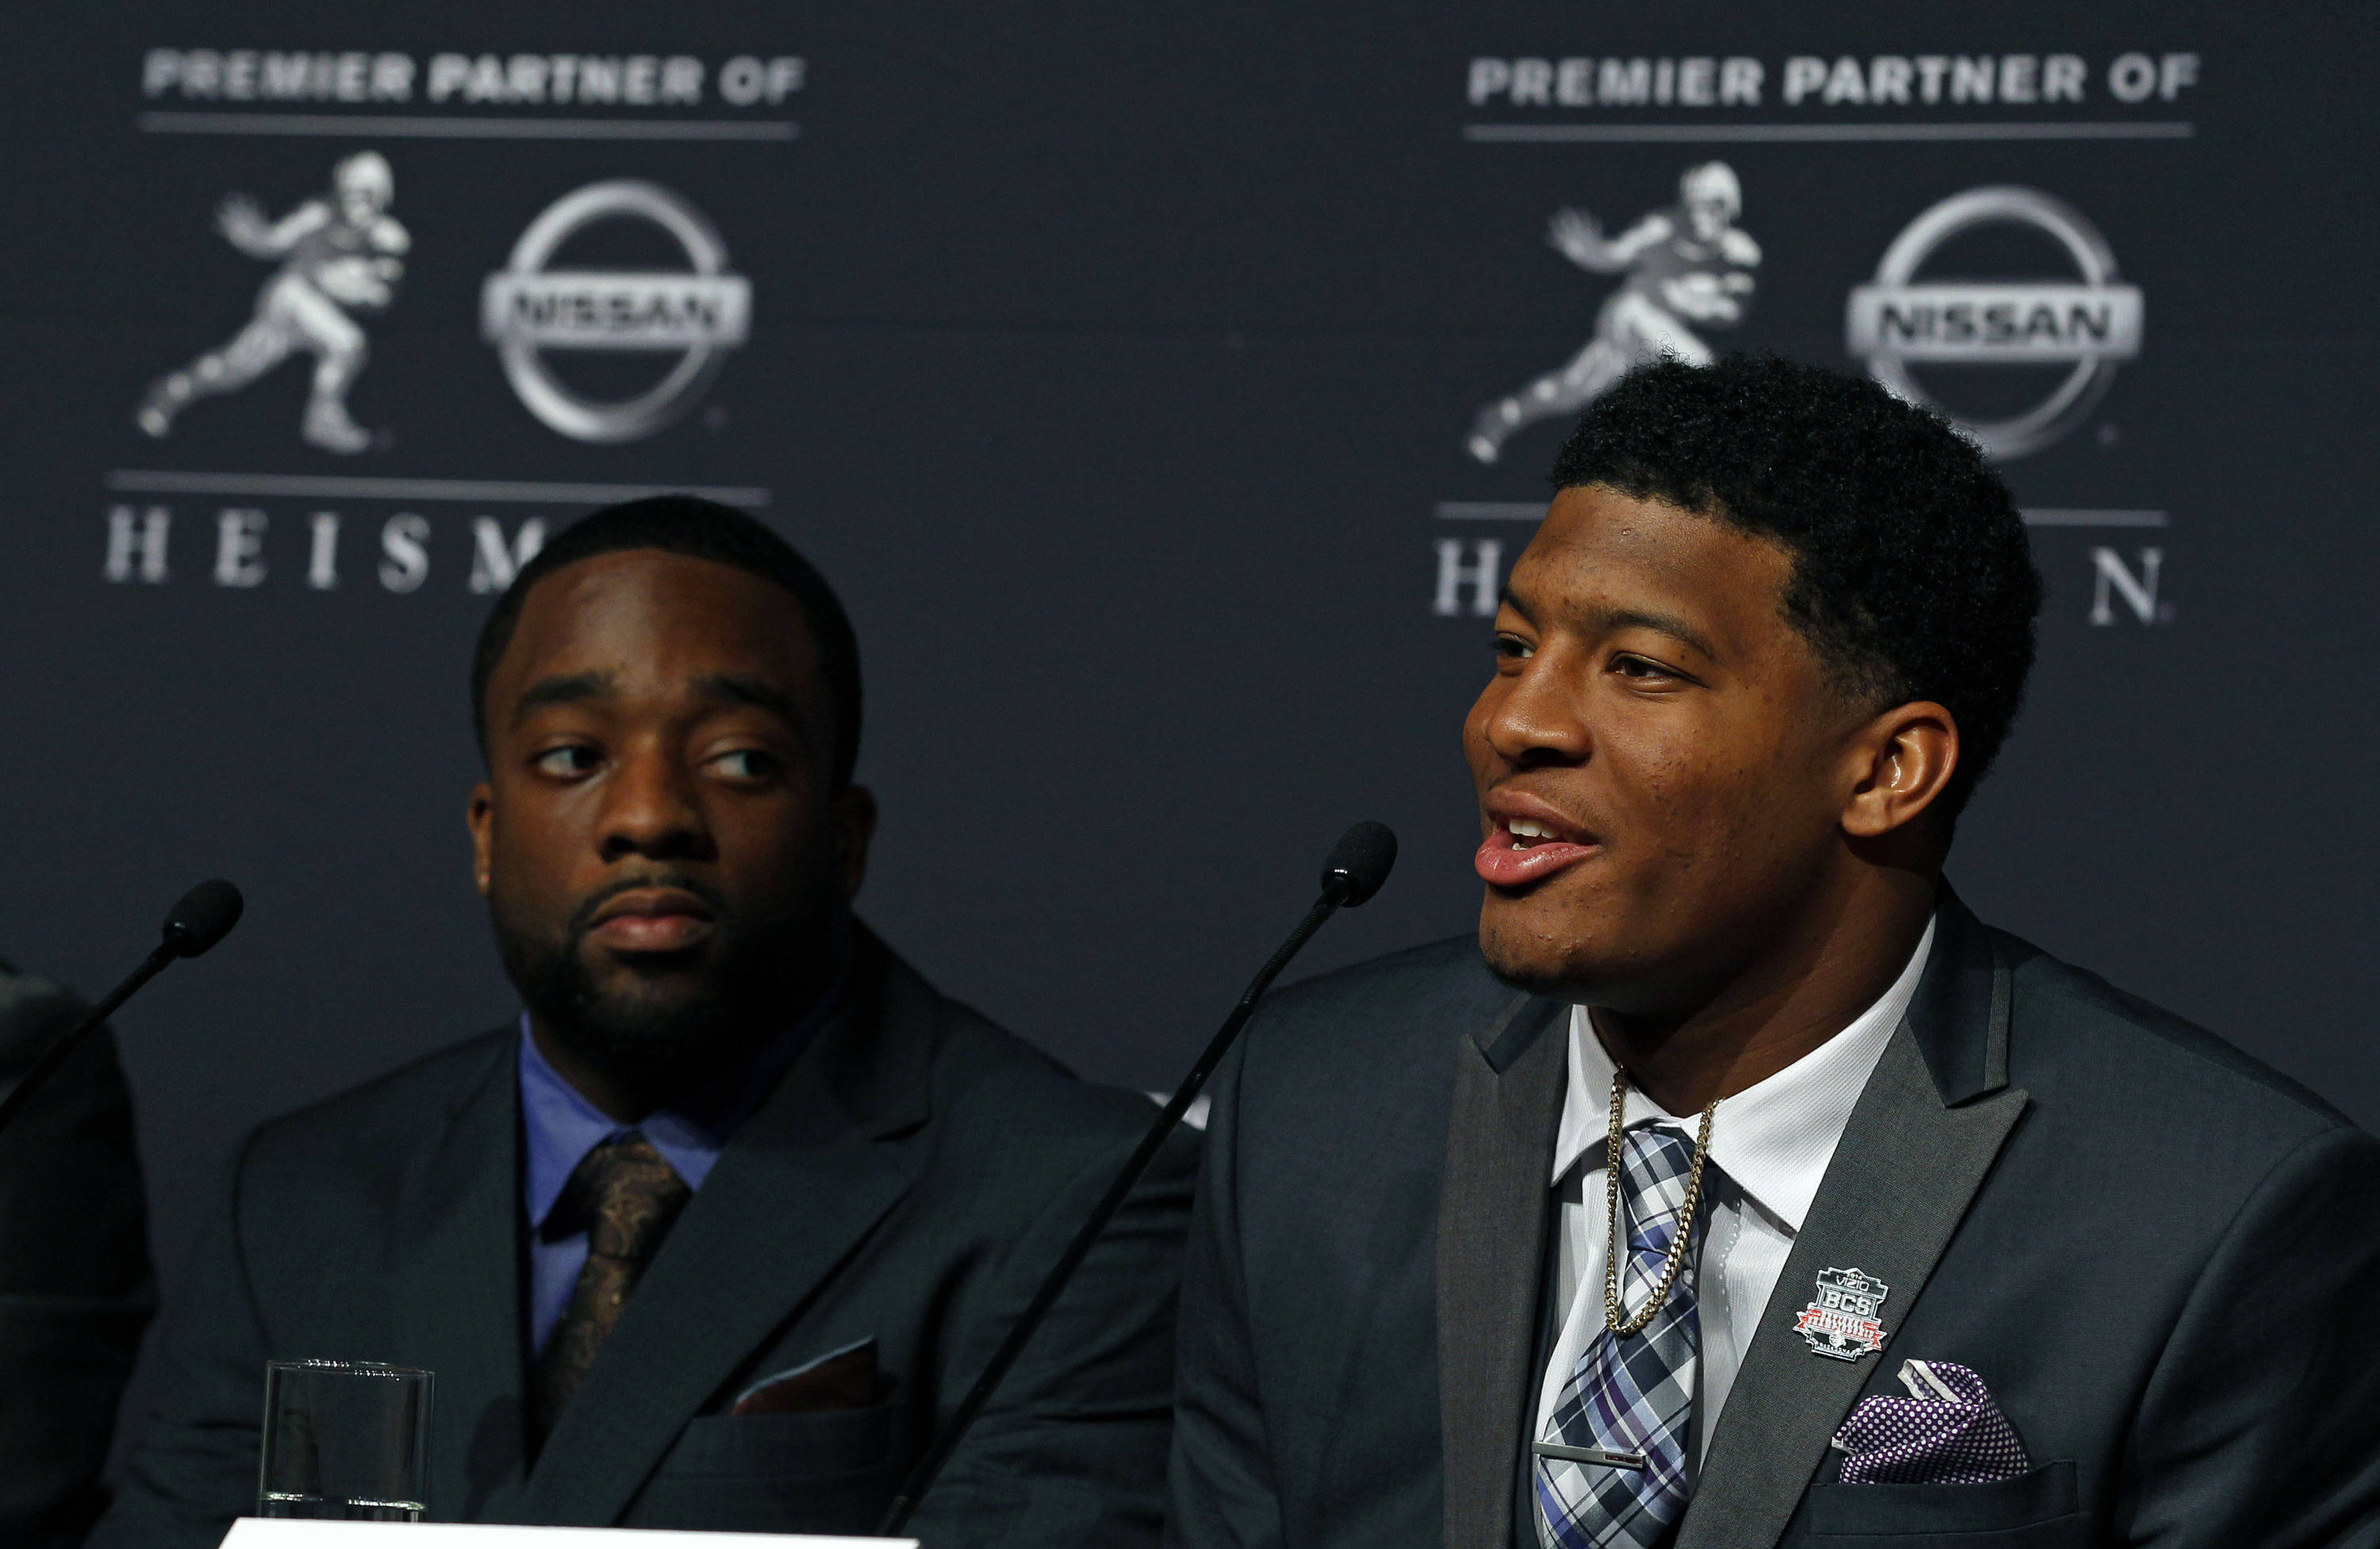 Dec 14, 2013; New York, NY, USA; Seminoles quarterback Jameis Winston and Boston College Eagles running back Andre Williams (left) during a press conference before the announcement of the 2013 Heisman Trophy winner. Adam Hunger-USA TODAY Sports